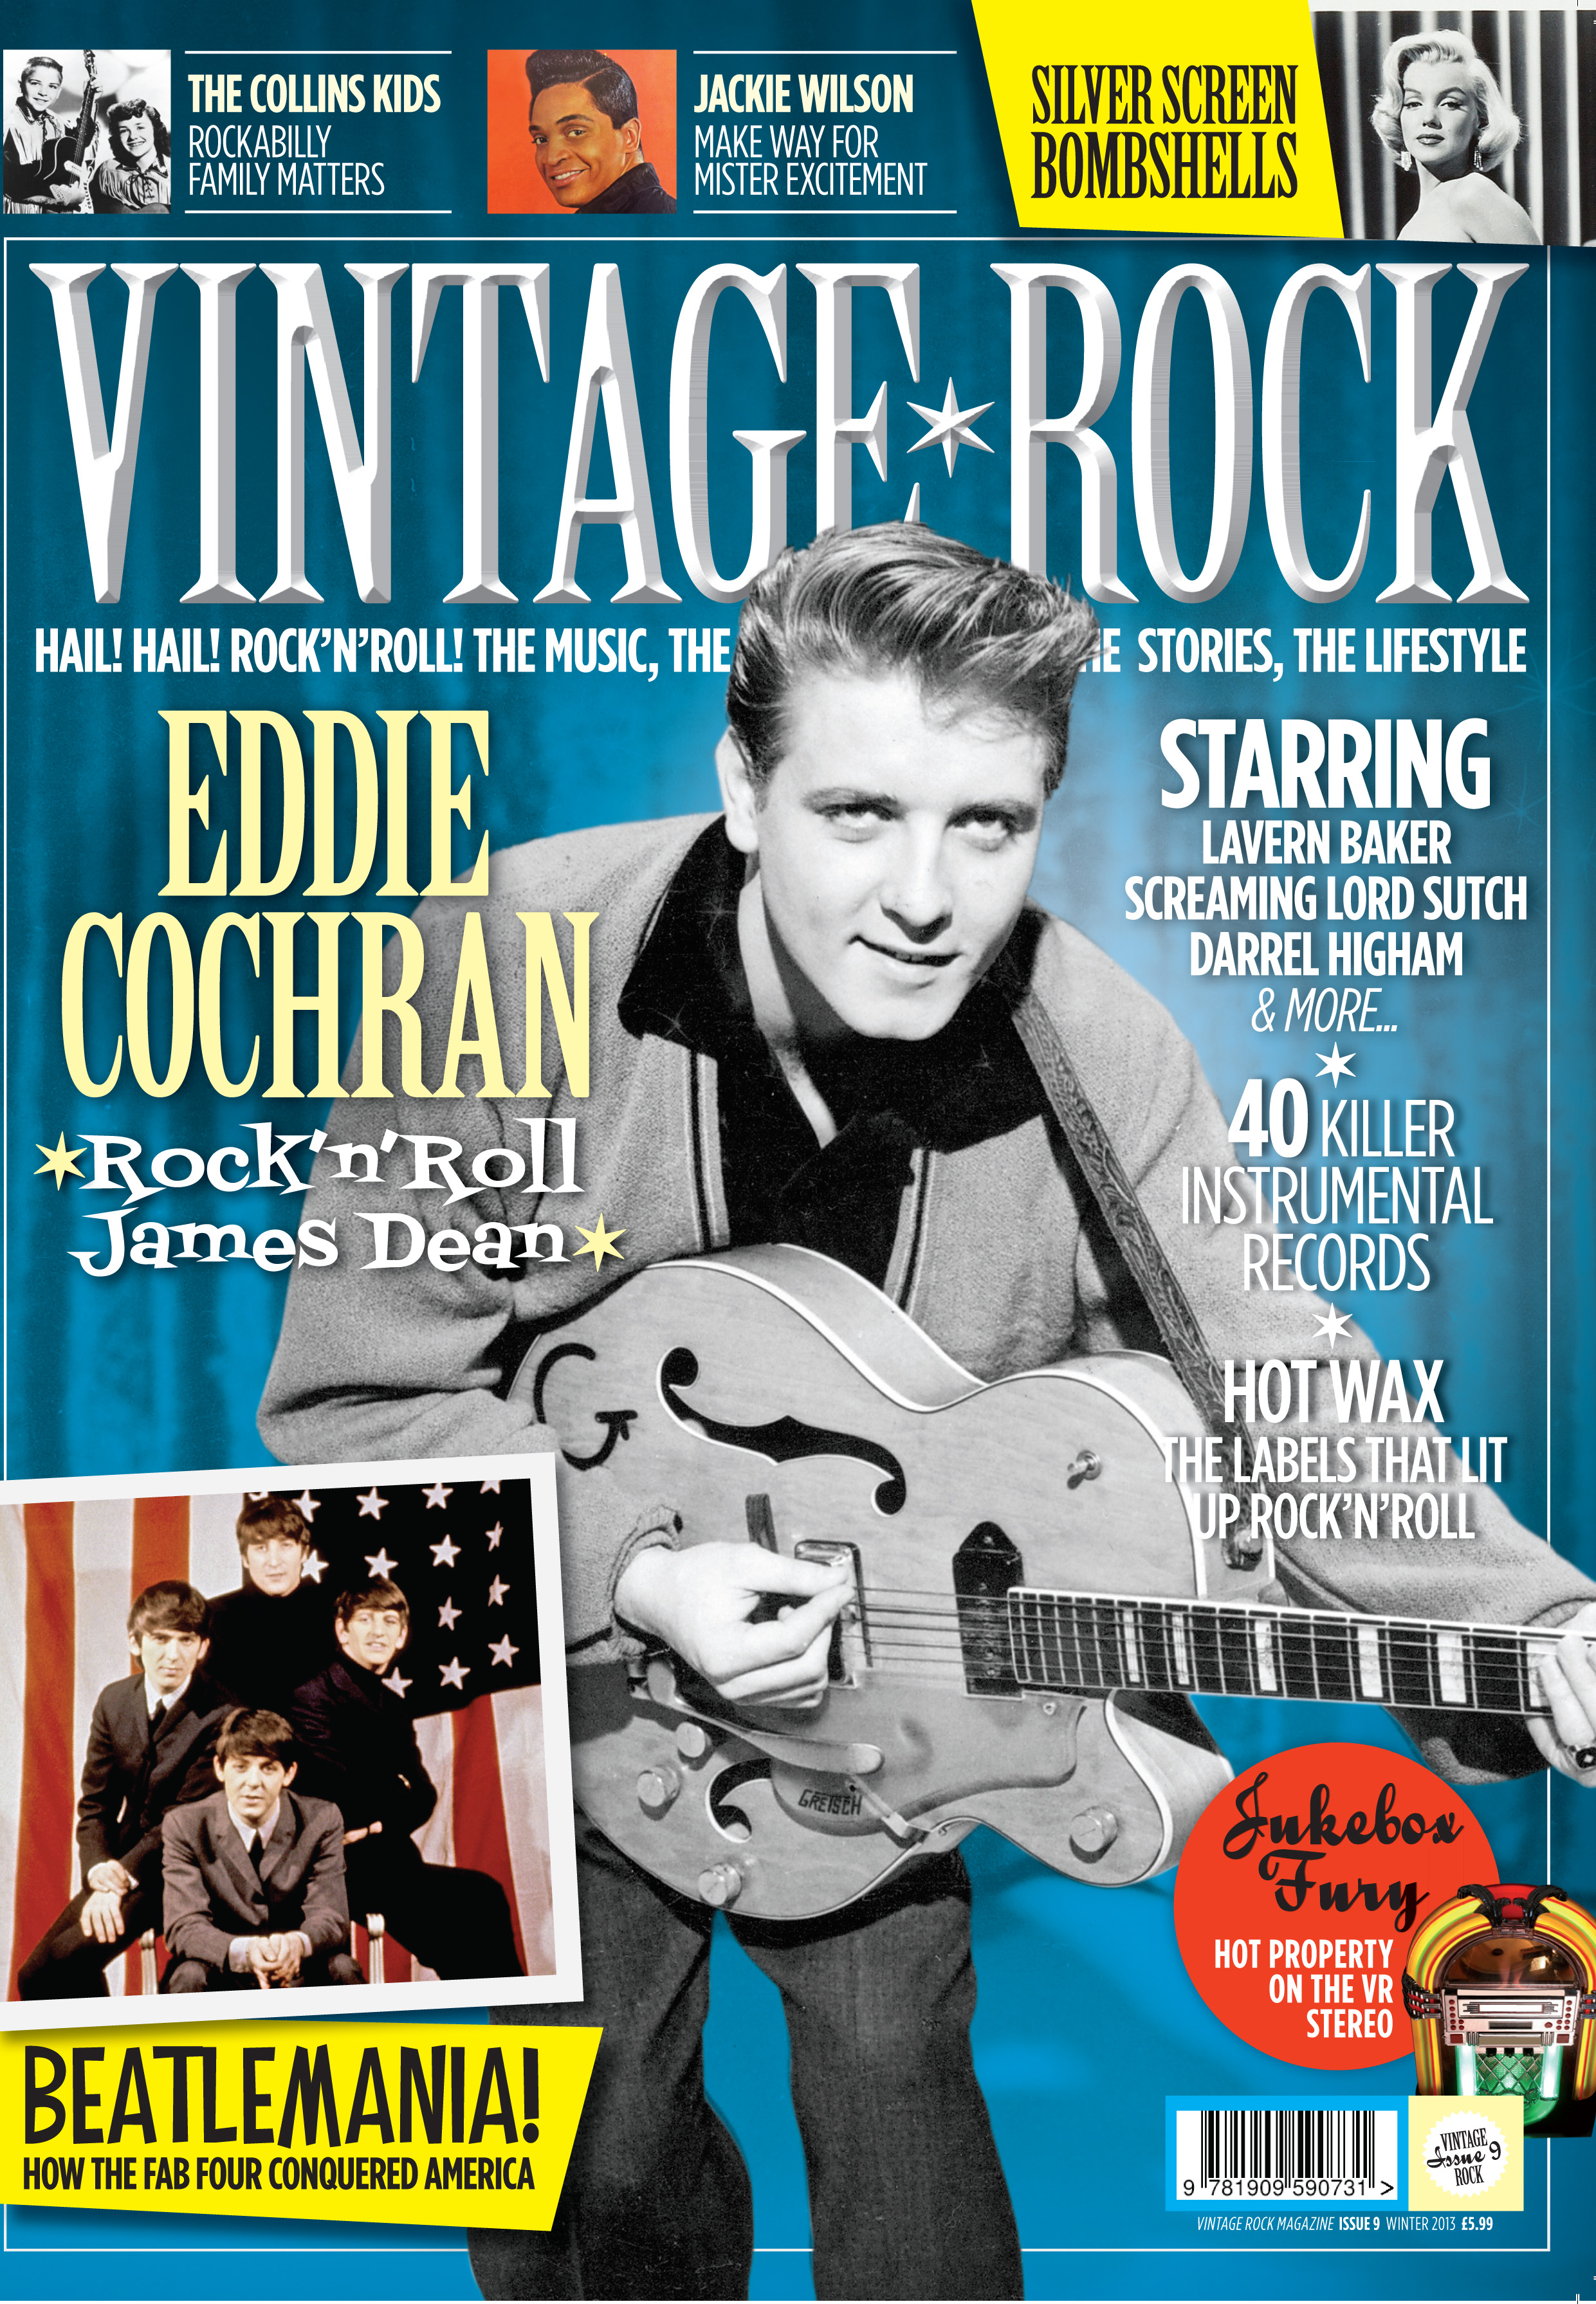 Vintage Rock Issue 9 Is Out Now